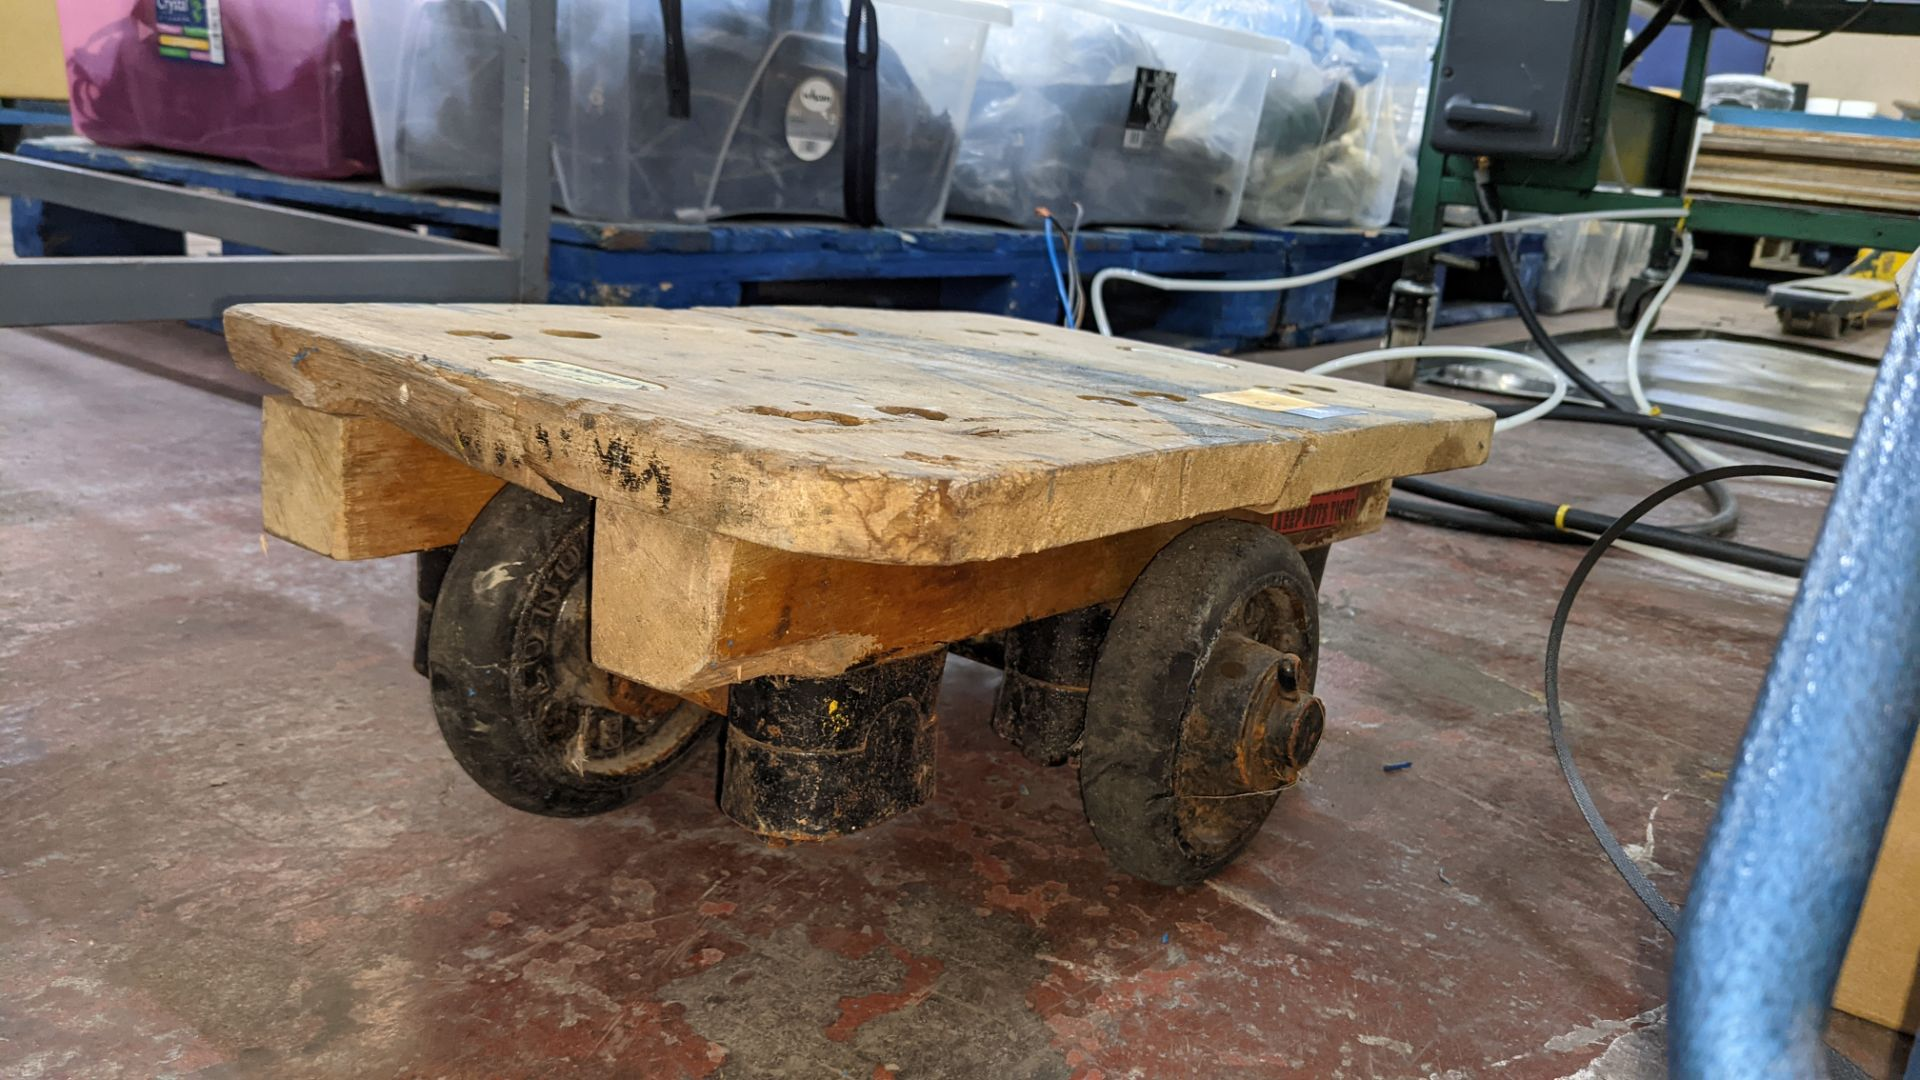 Slingsby small 4 wheel dolly - platform 460mm x 310mm - Image 4 of 5